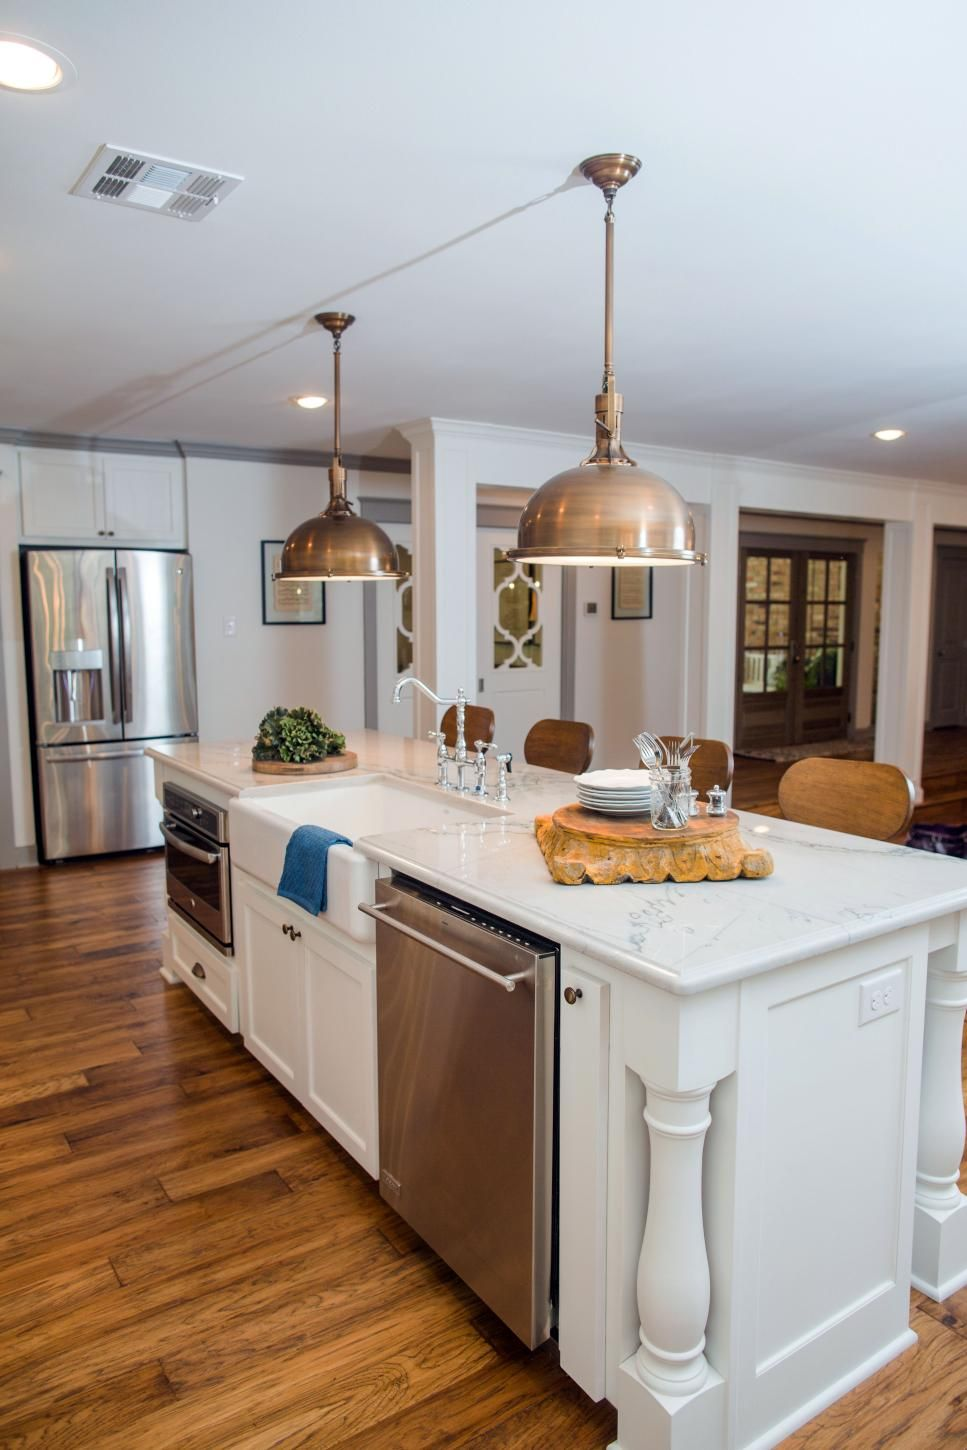 fixer upper a big fix for a house in the woods kitchen island with sink modern kitchen on kitchen layout ideas with island joanna gaines id=72771